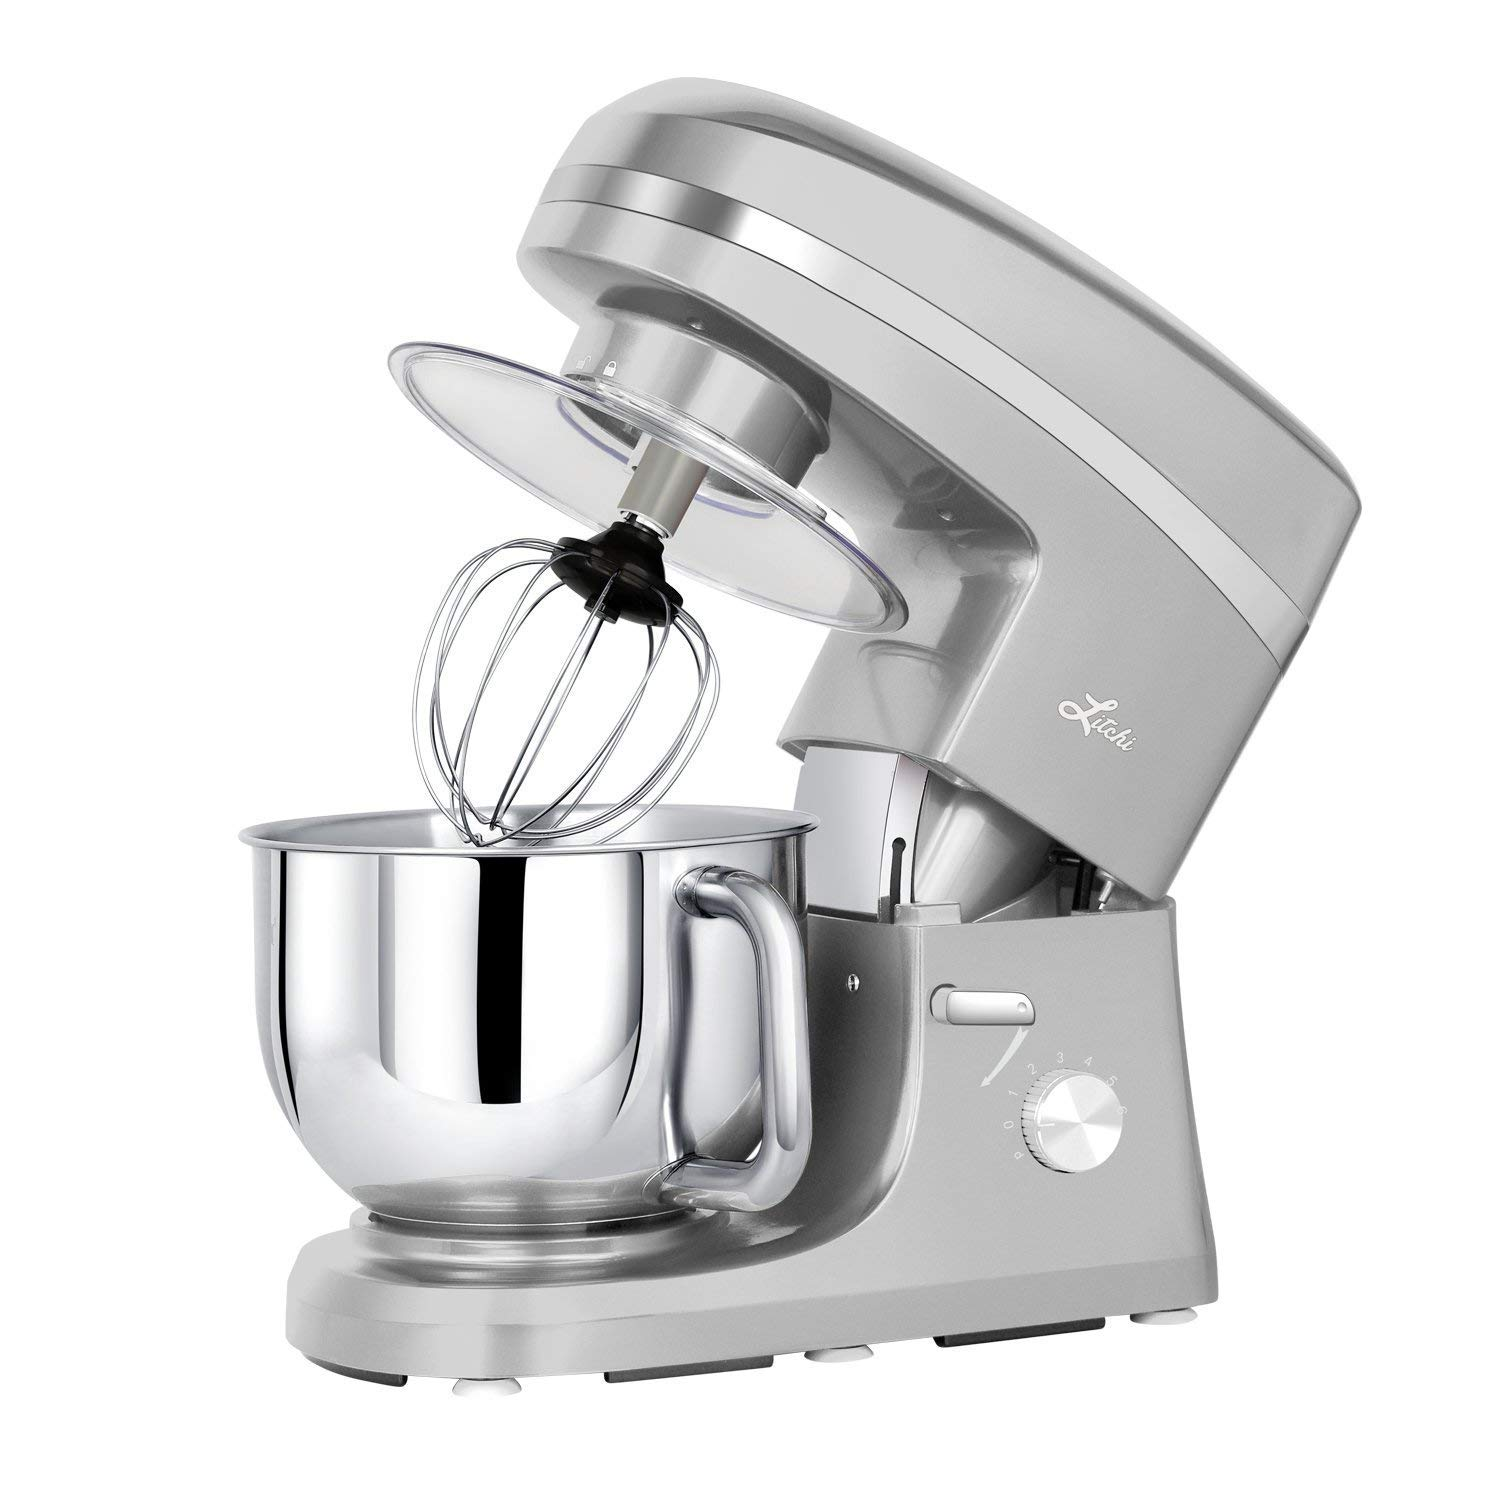 Litchi Kitchen Stand Mixer, 5.5 Qt. 650W 6-Speed Electric Mixer with Stainless Steel Bowl, Pouring Shield, Beaters, Whisk, Dough Hook, Silver by Litchi